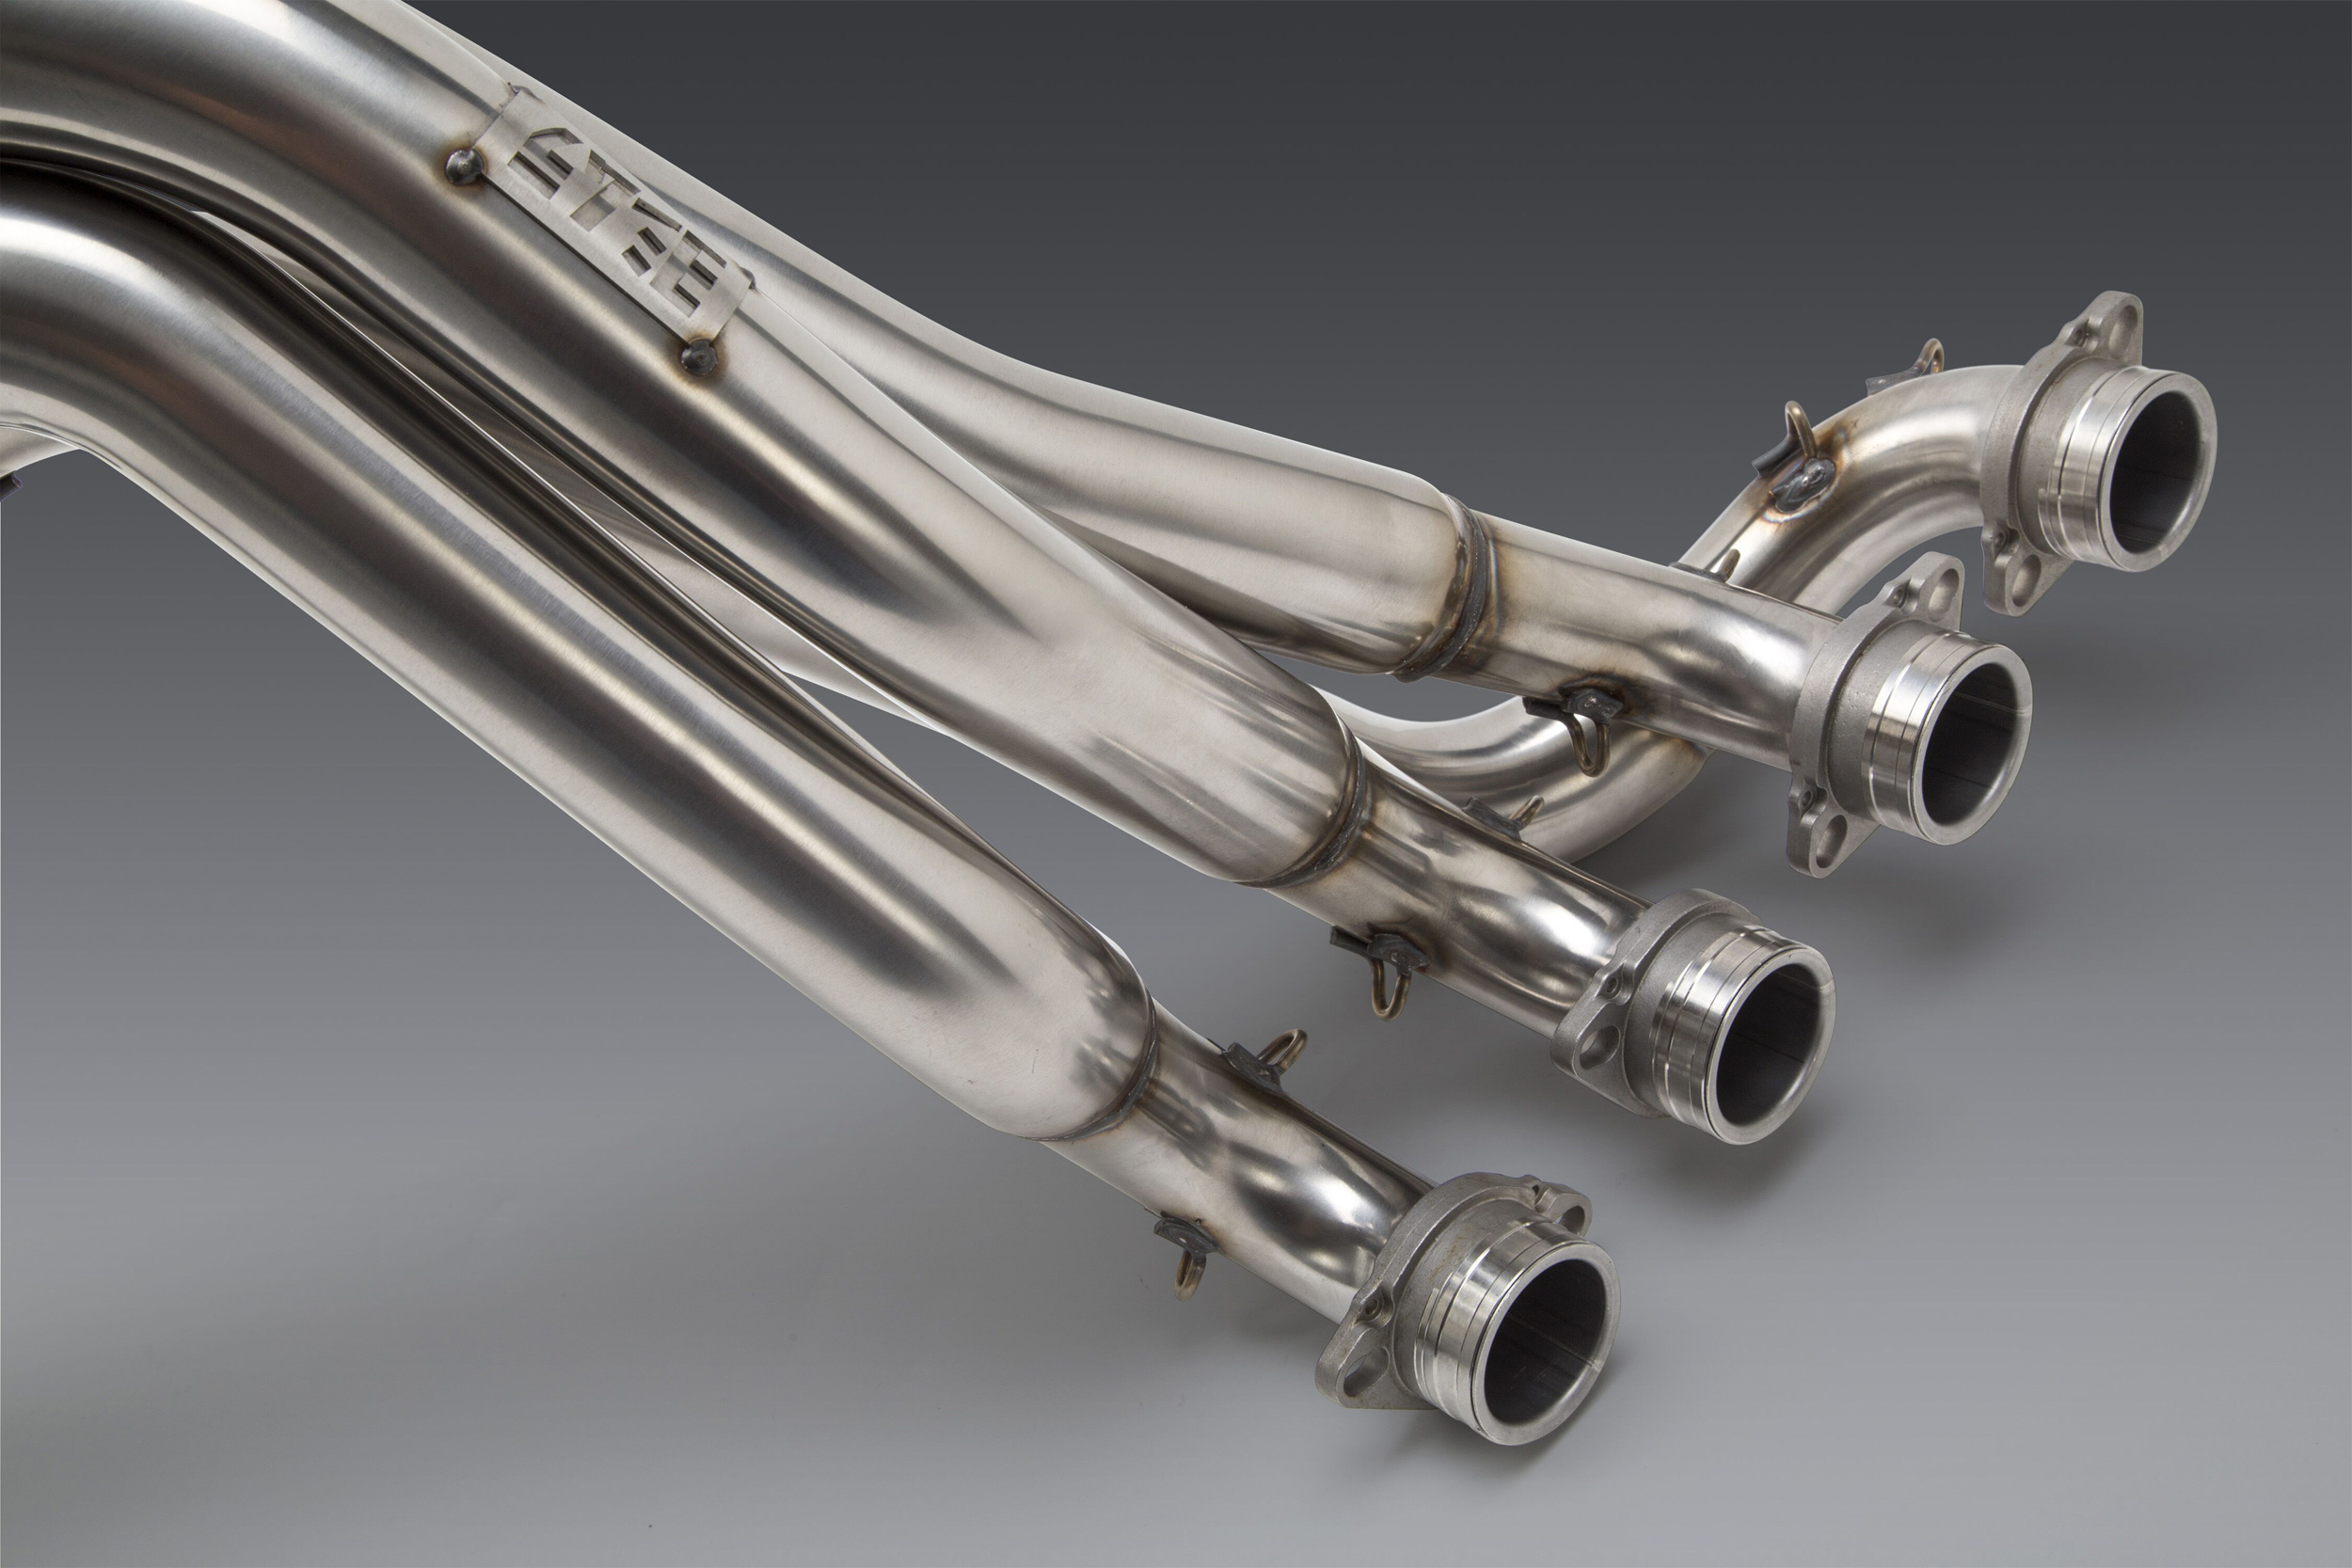 200227 Yoshimura Introduces Mod Lites GSX-R 1000 Exhaust Systems [3]